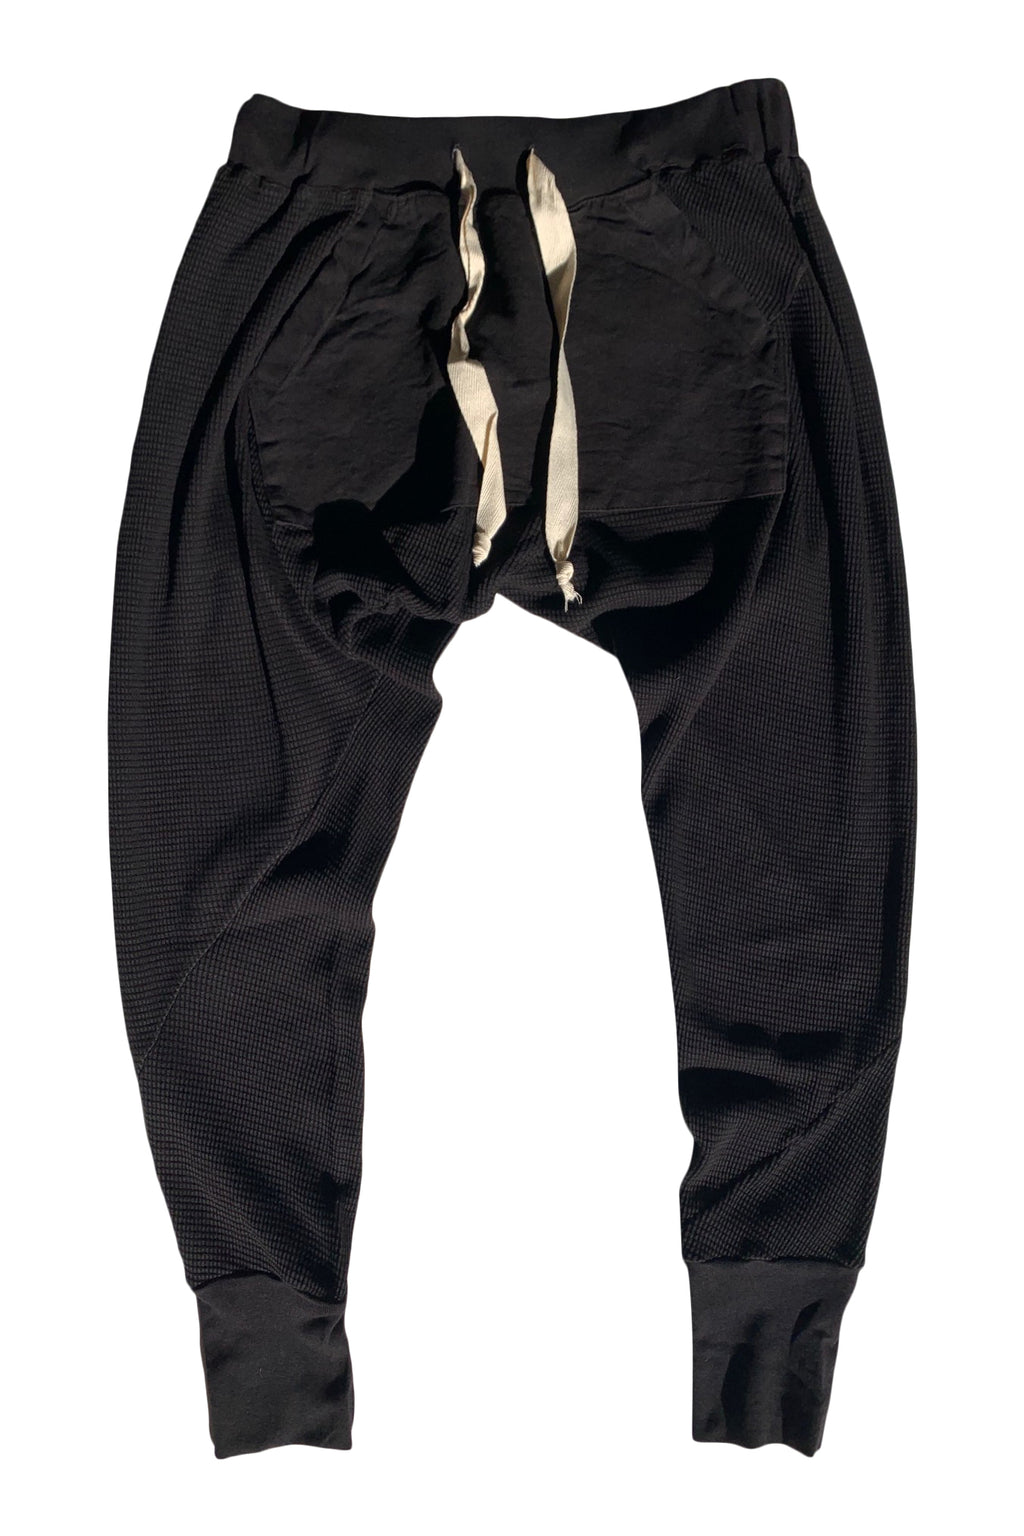 PANT THERMAL BLACK